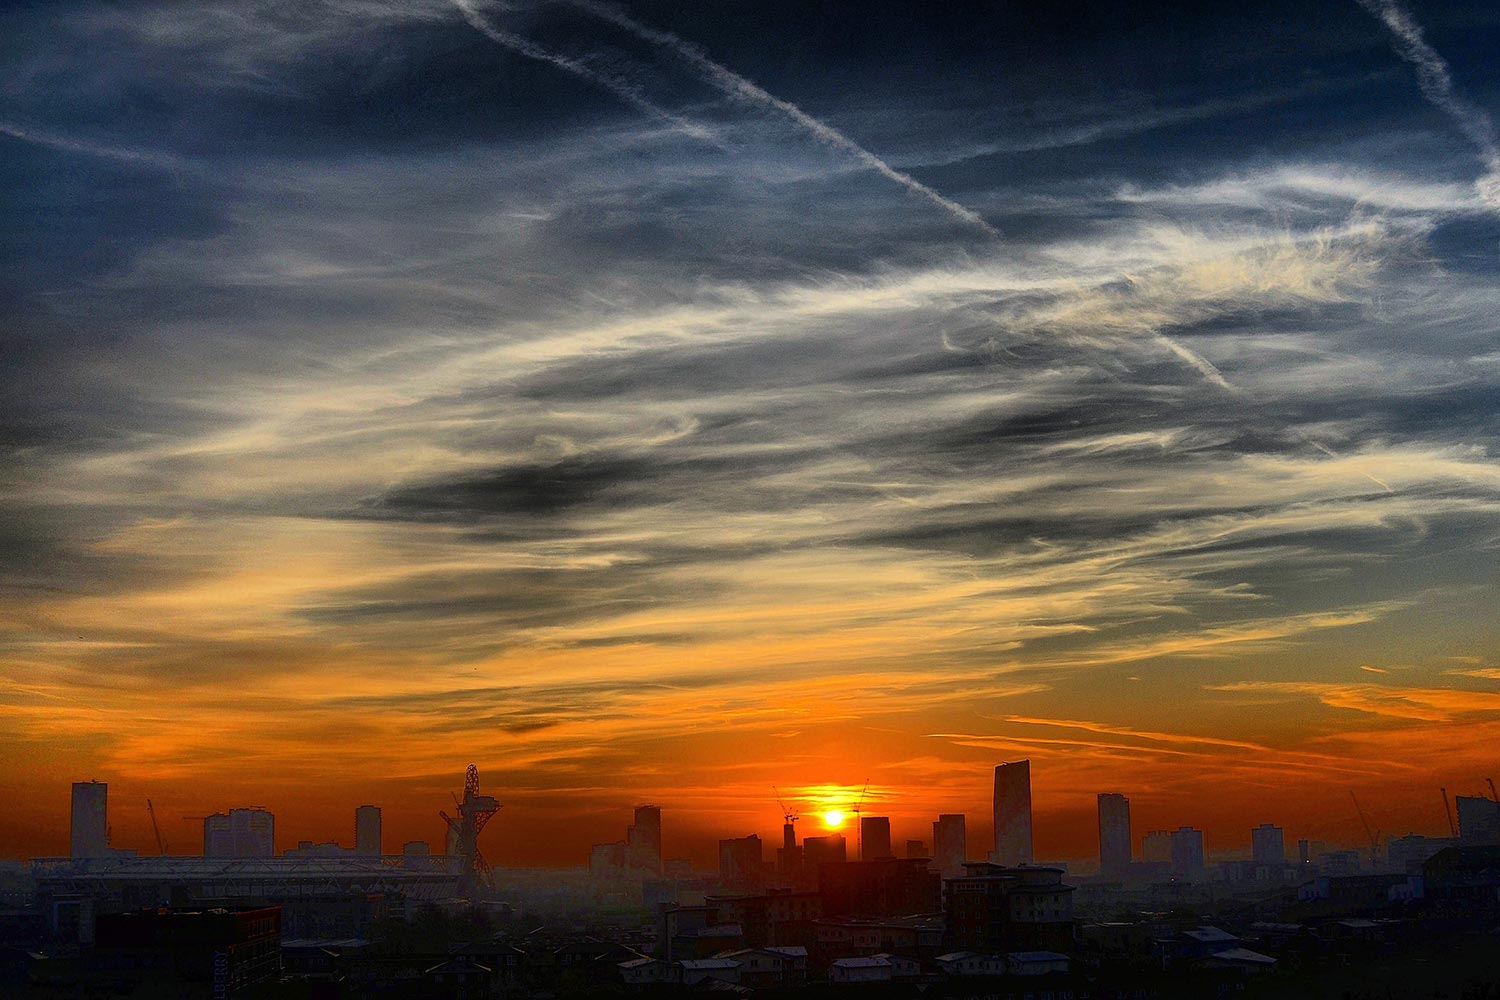 Photograph of Sunrise over Stratford